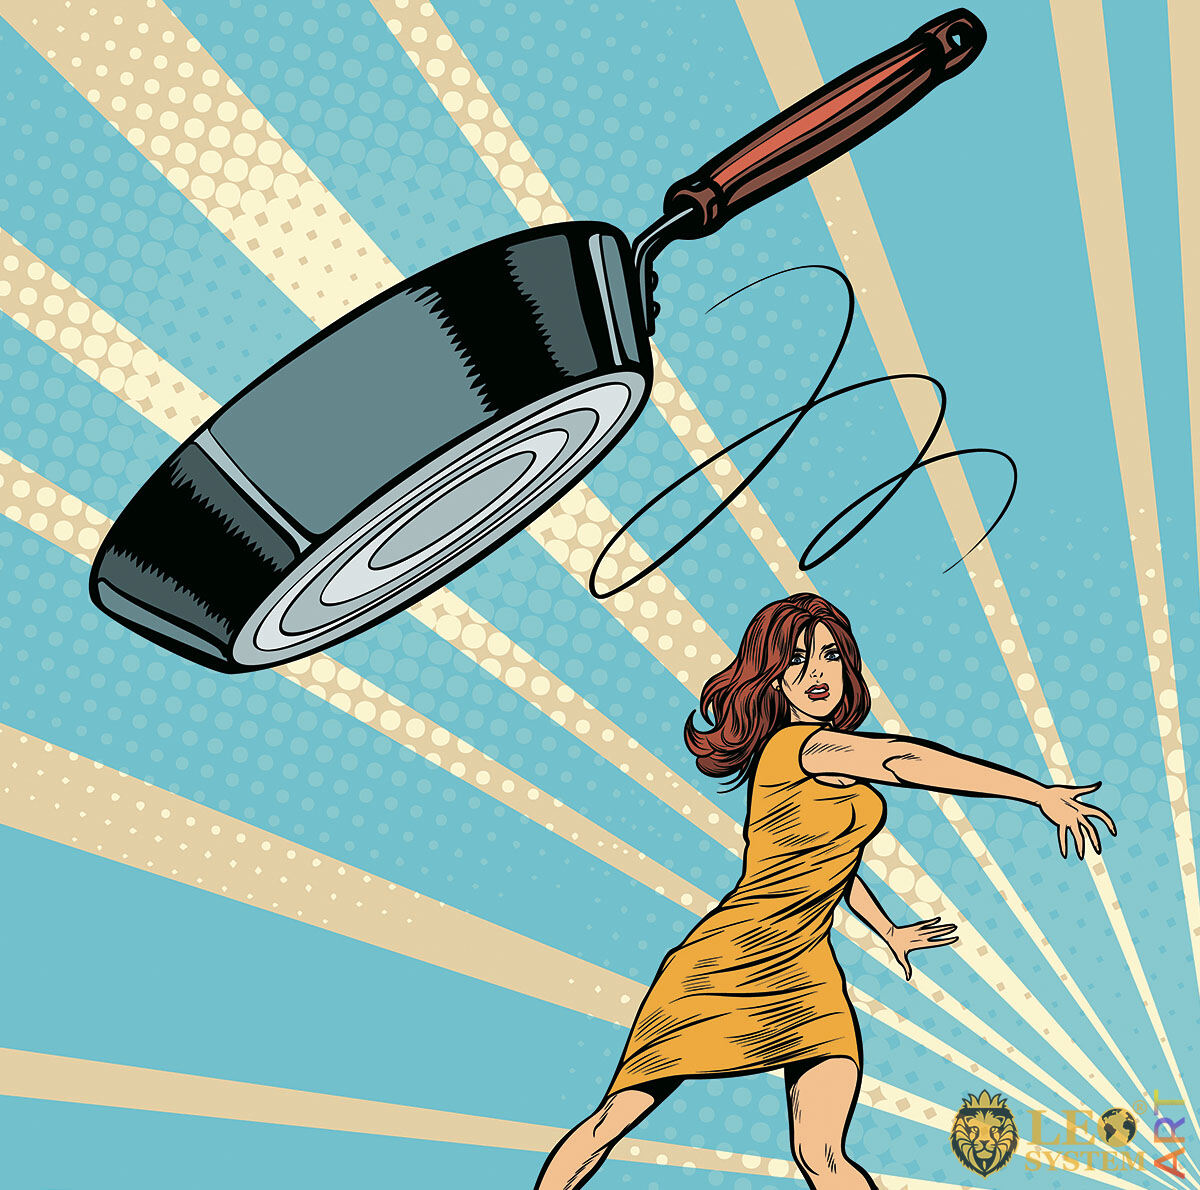 Picture of an angry woman throwing a frying pan